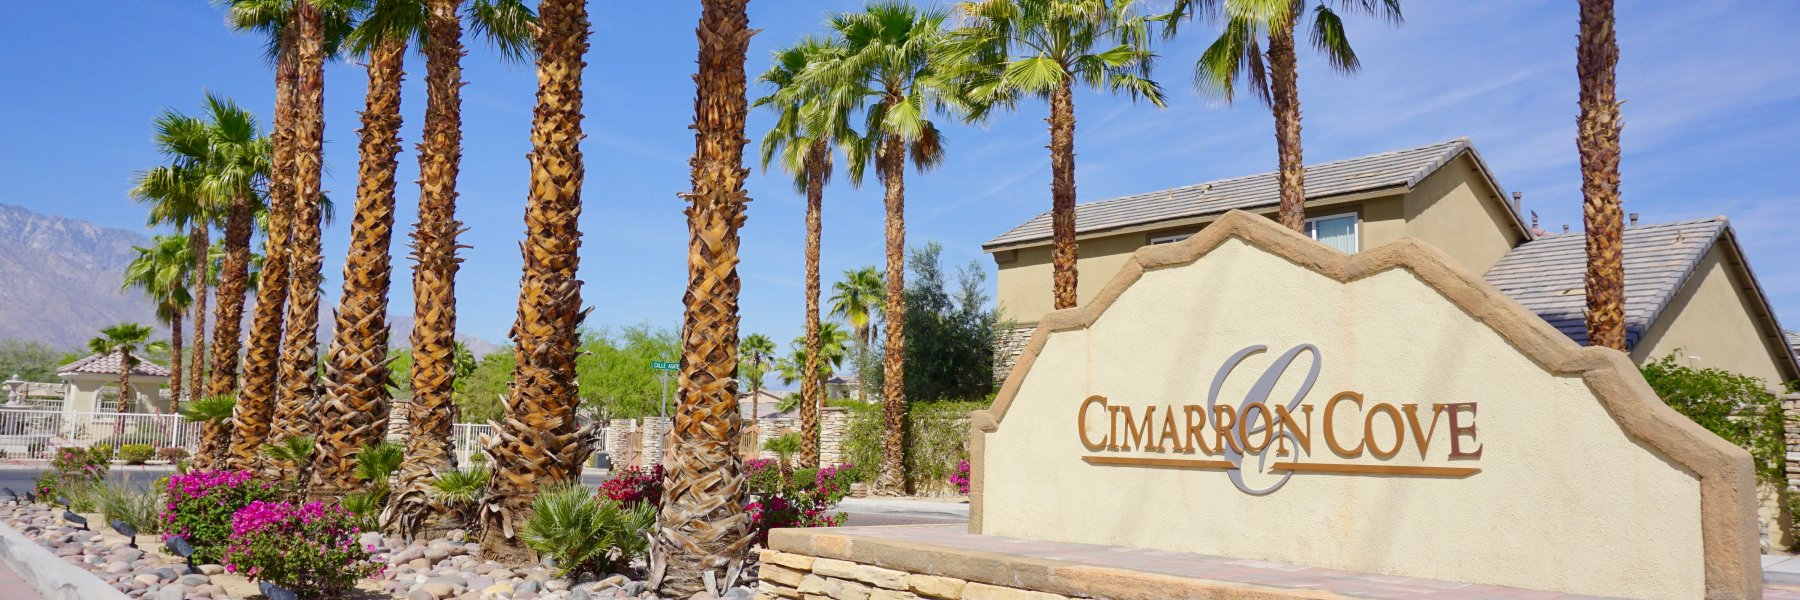 Cimarron Cove is a community of homes in Cathedral City California